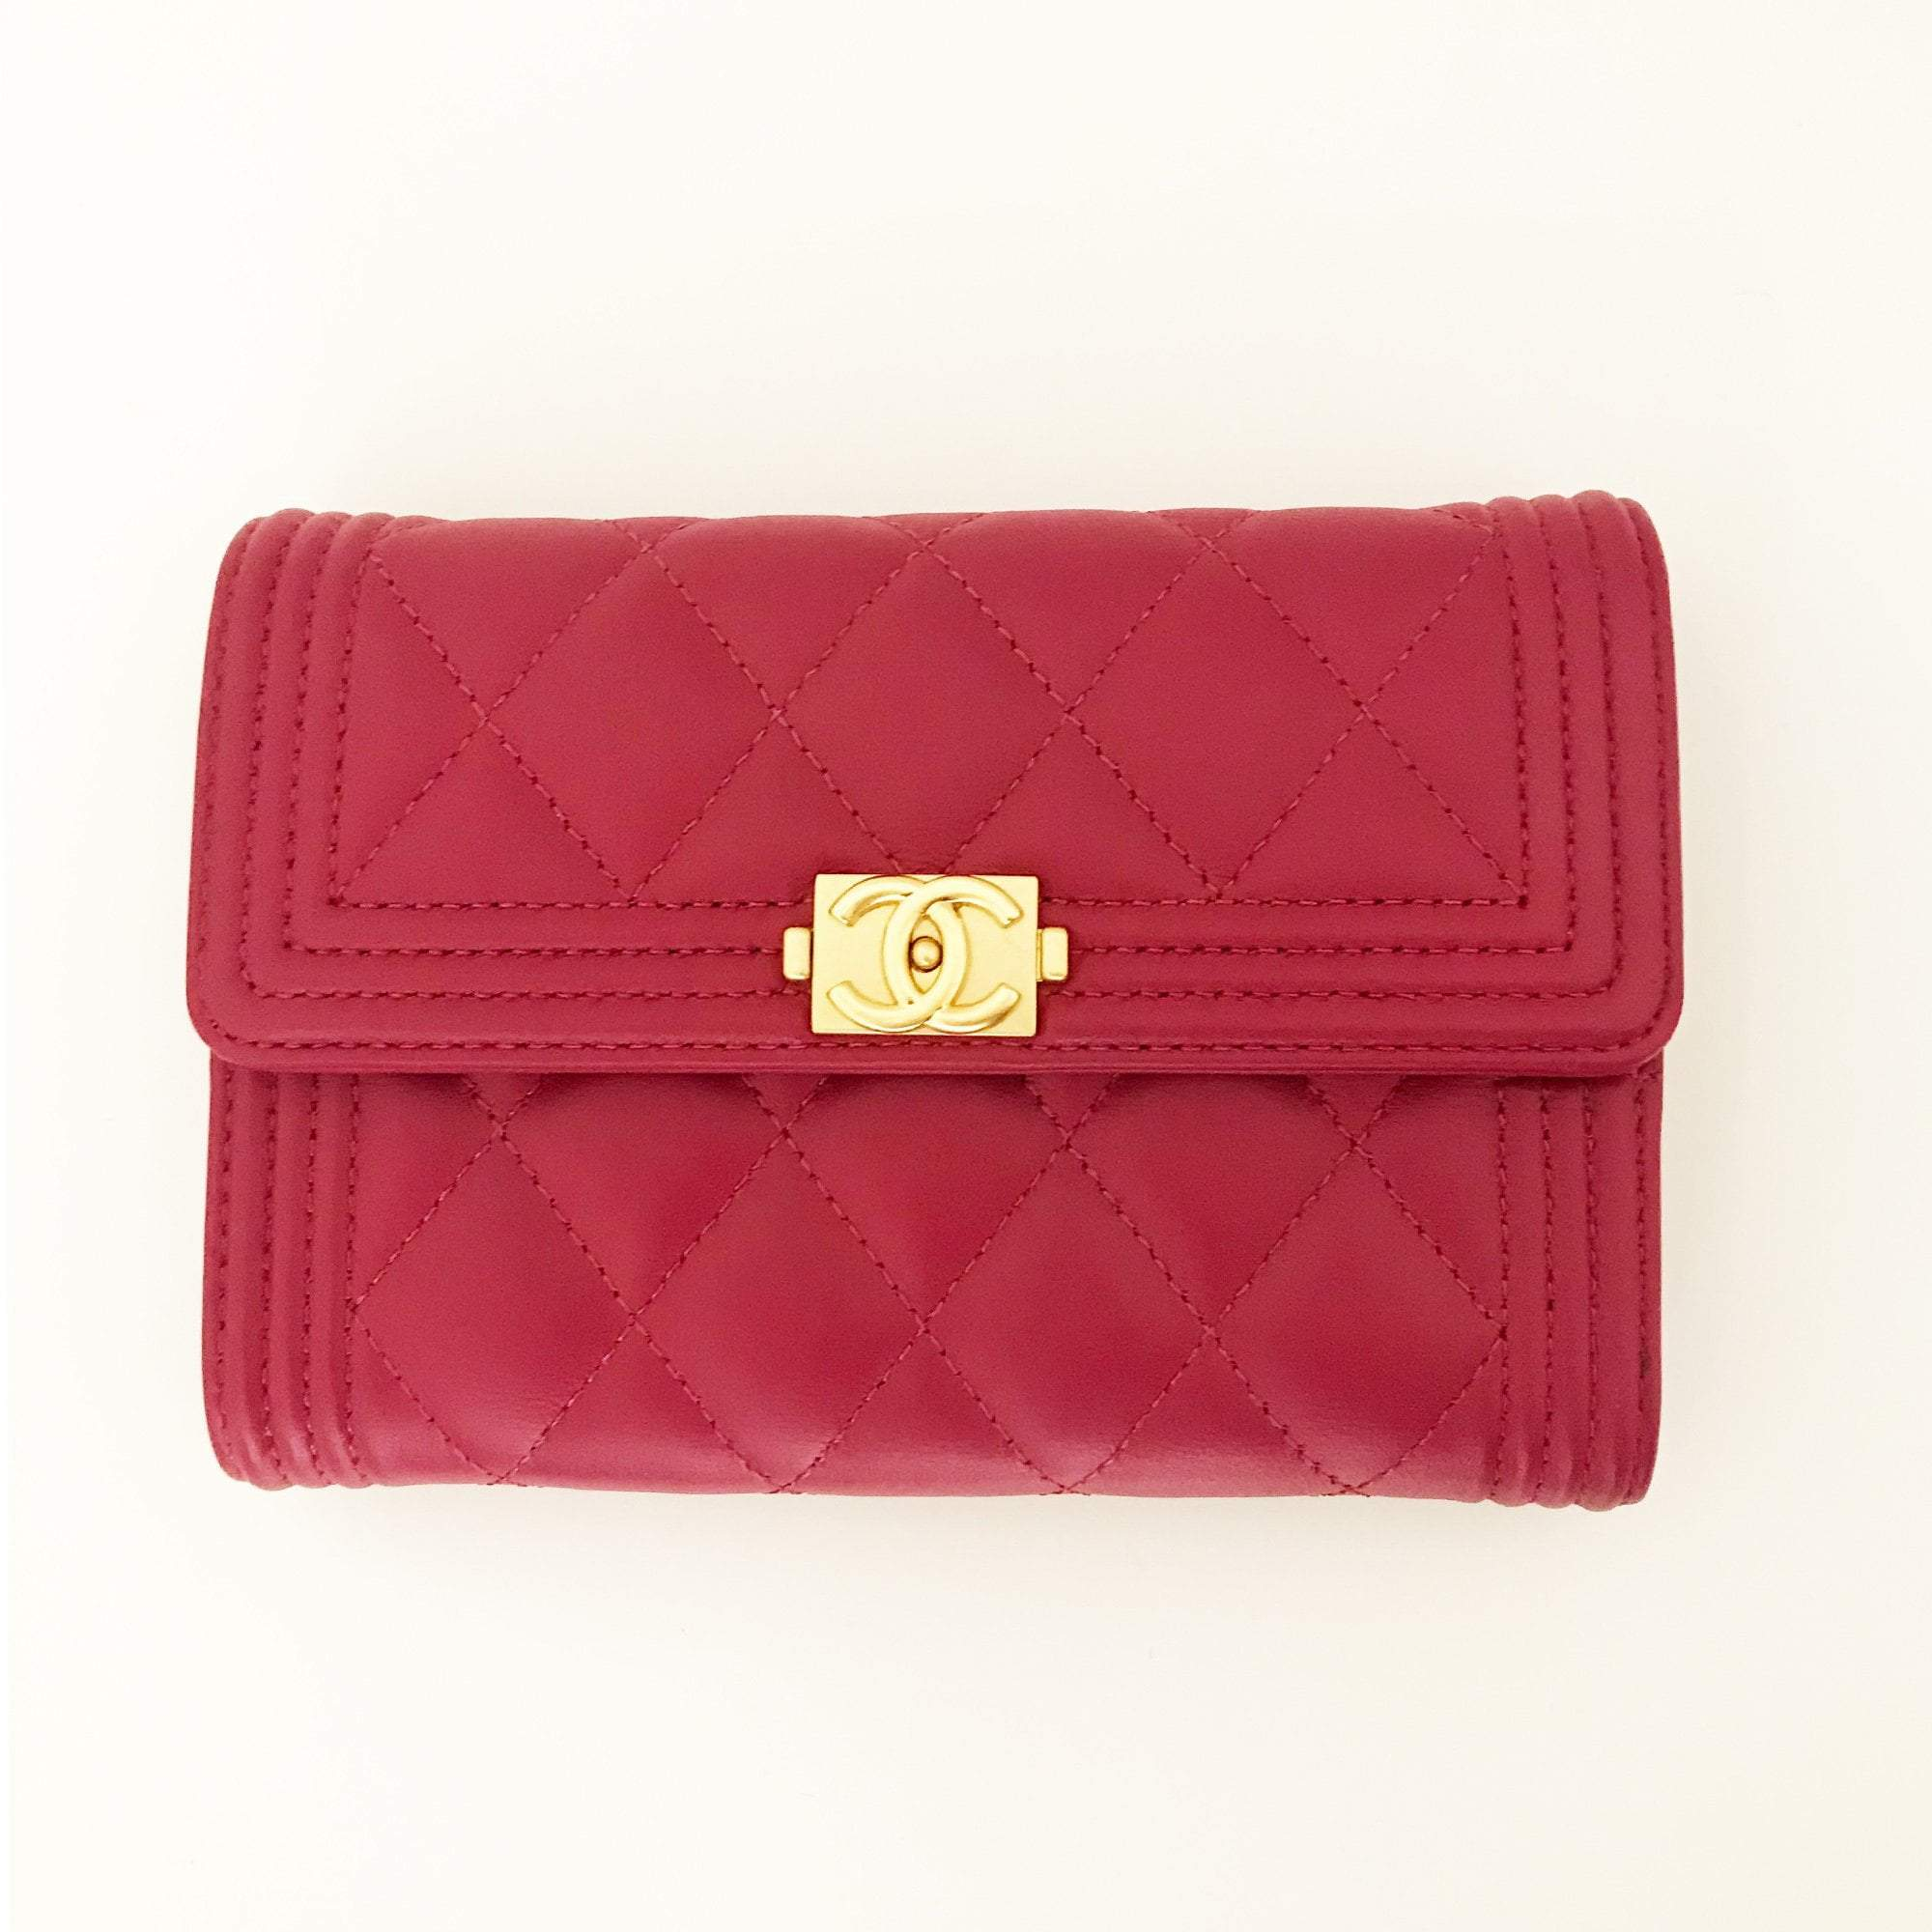 a25cd569b6dfa5 Chanel Small Fuschia Boy Wallet – Garderobe